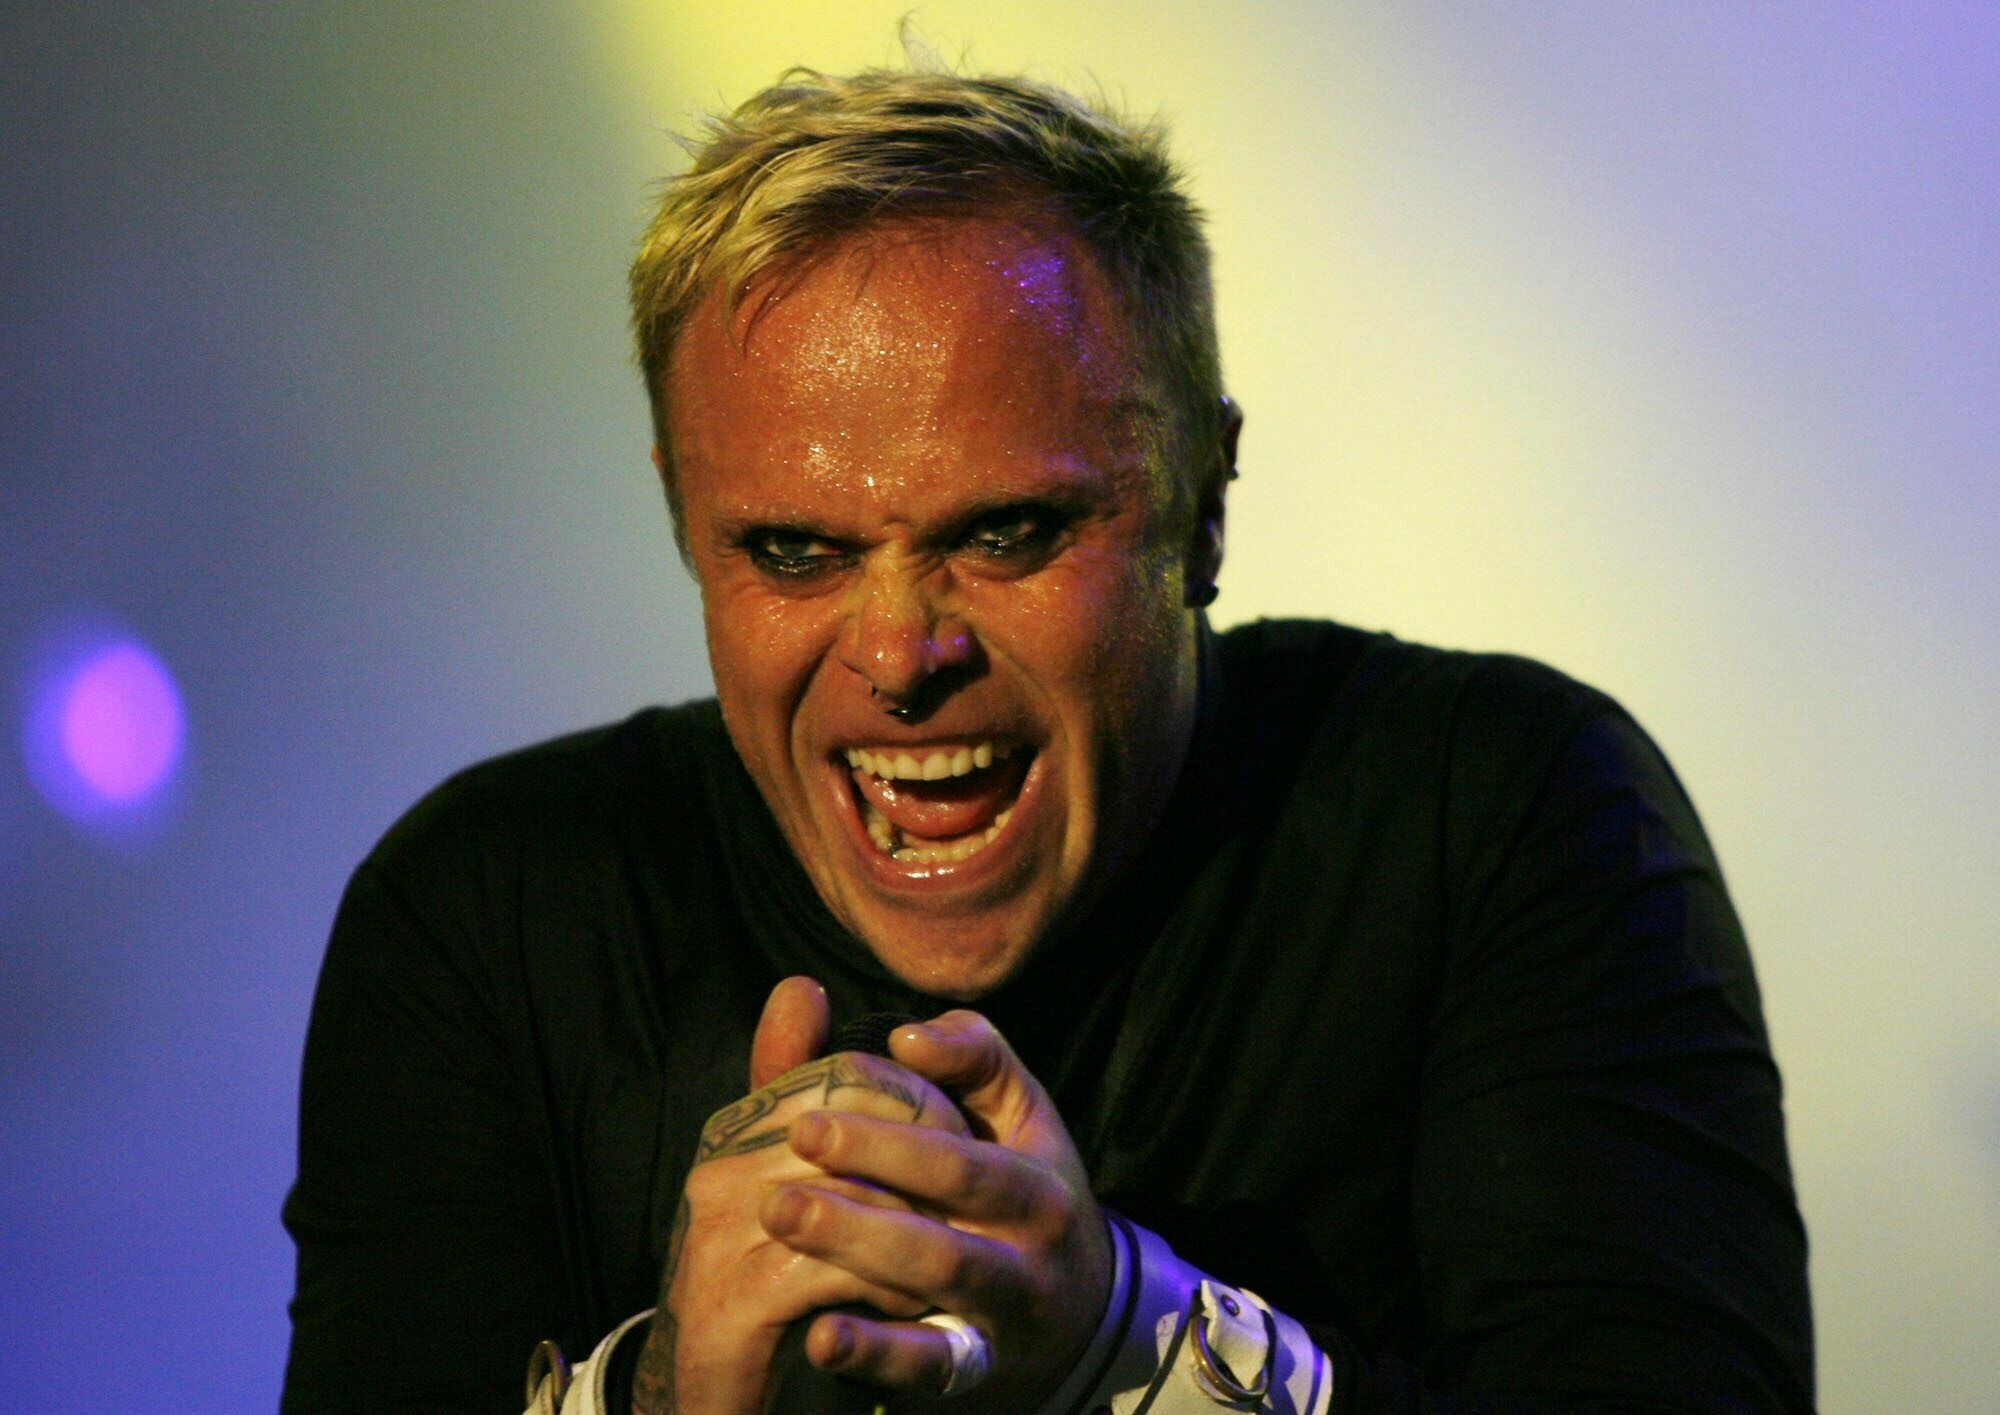 Keith Flint on stage. Credit: PA